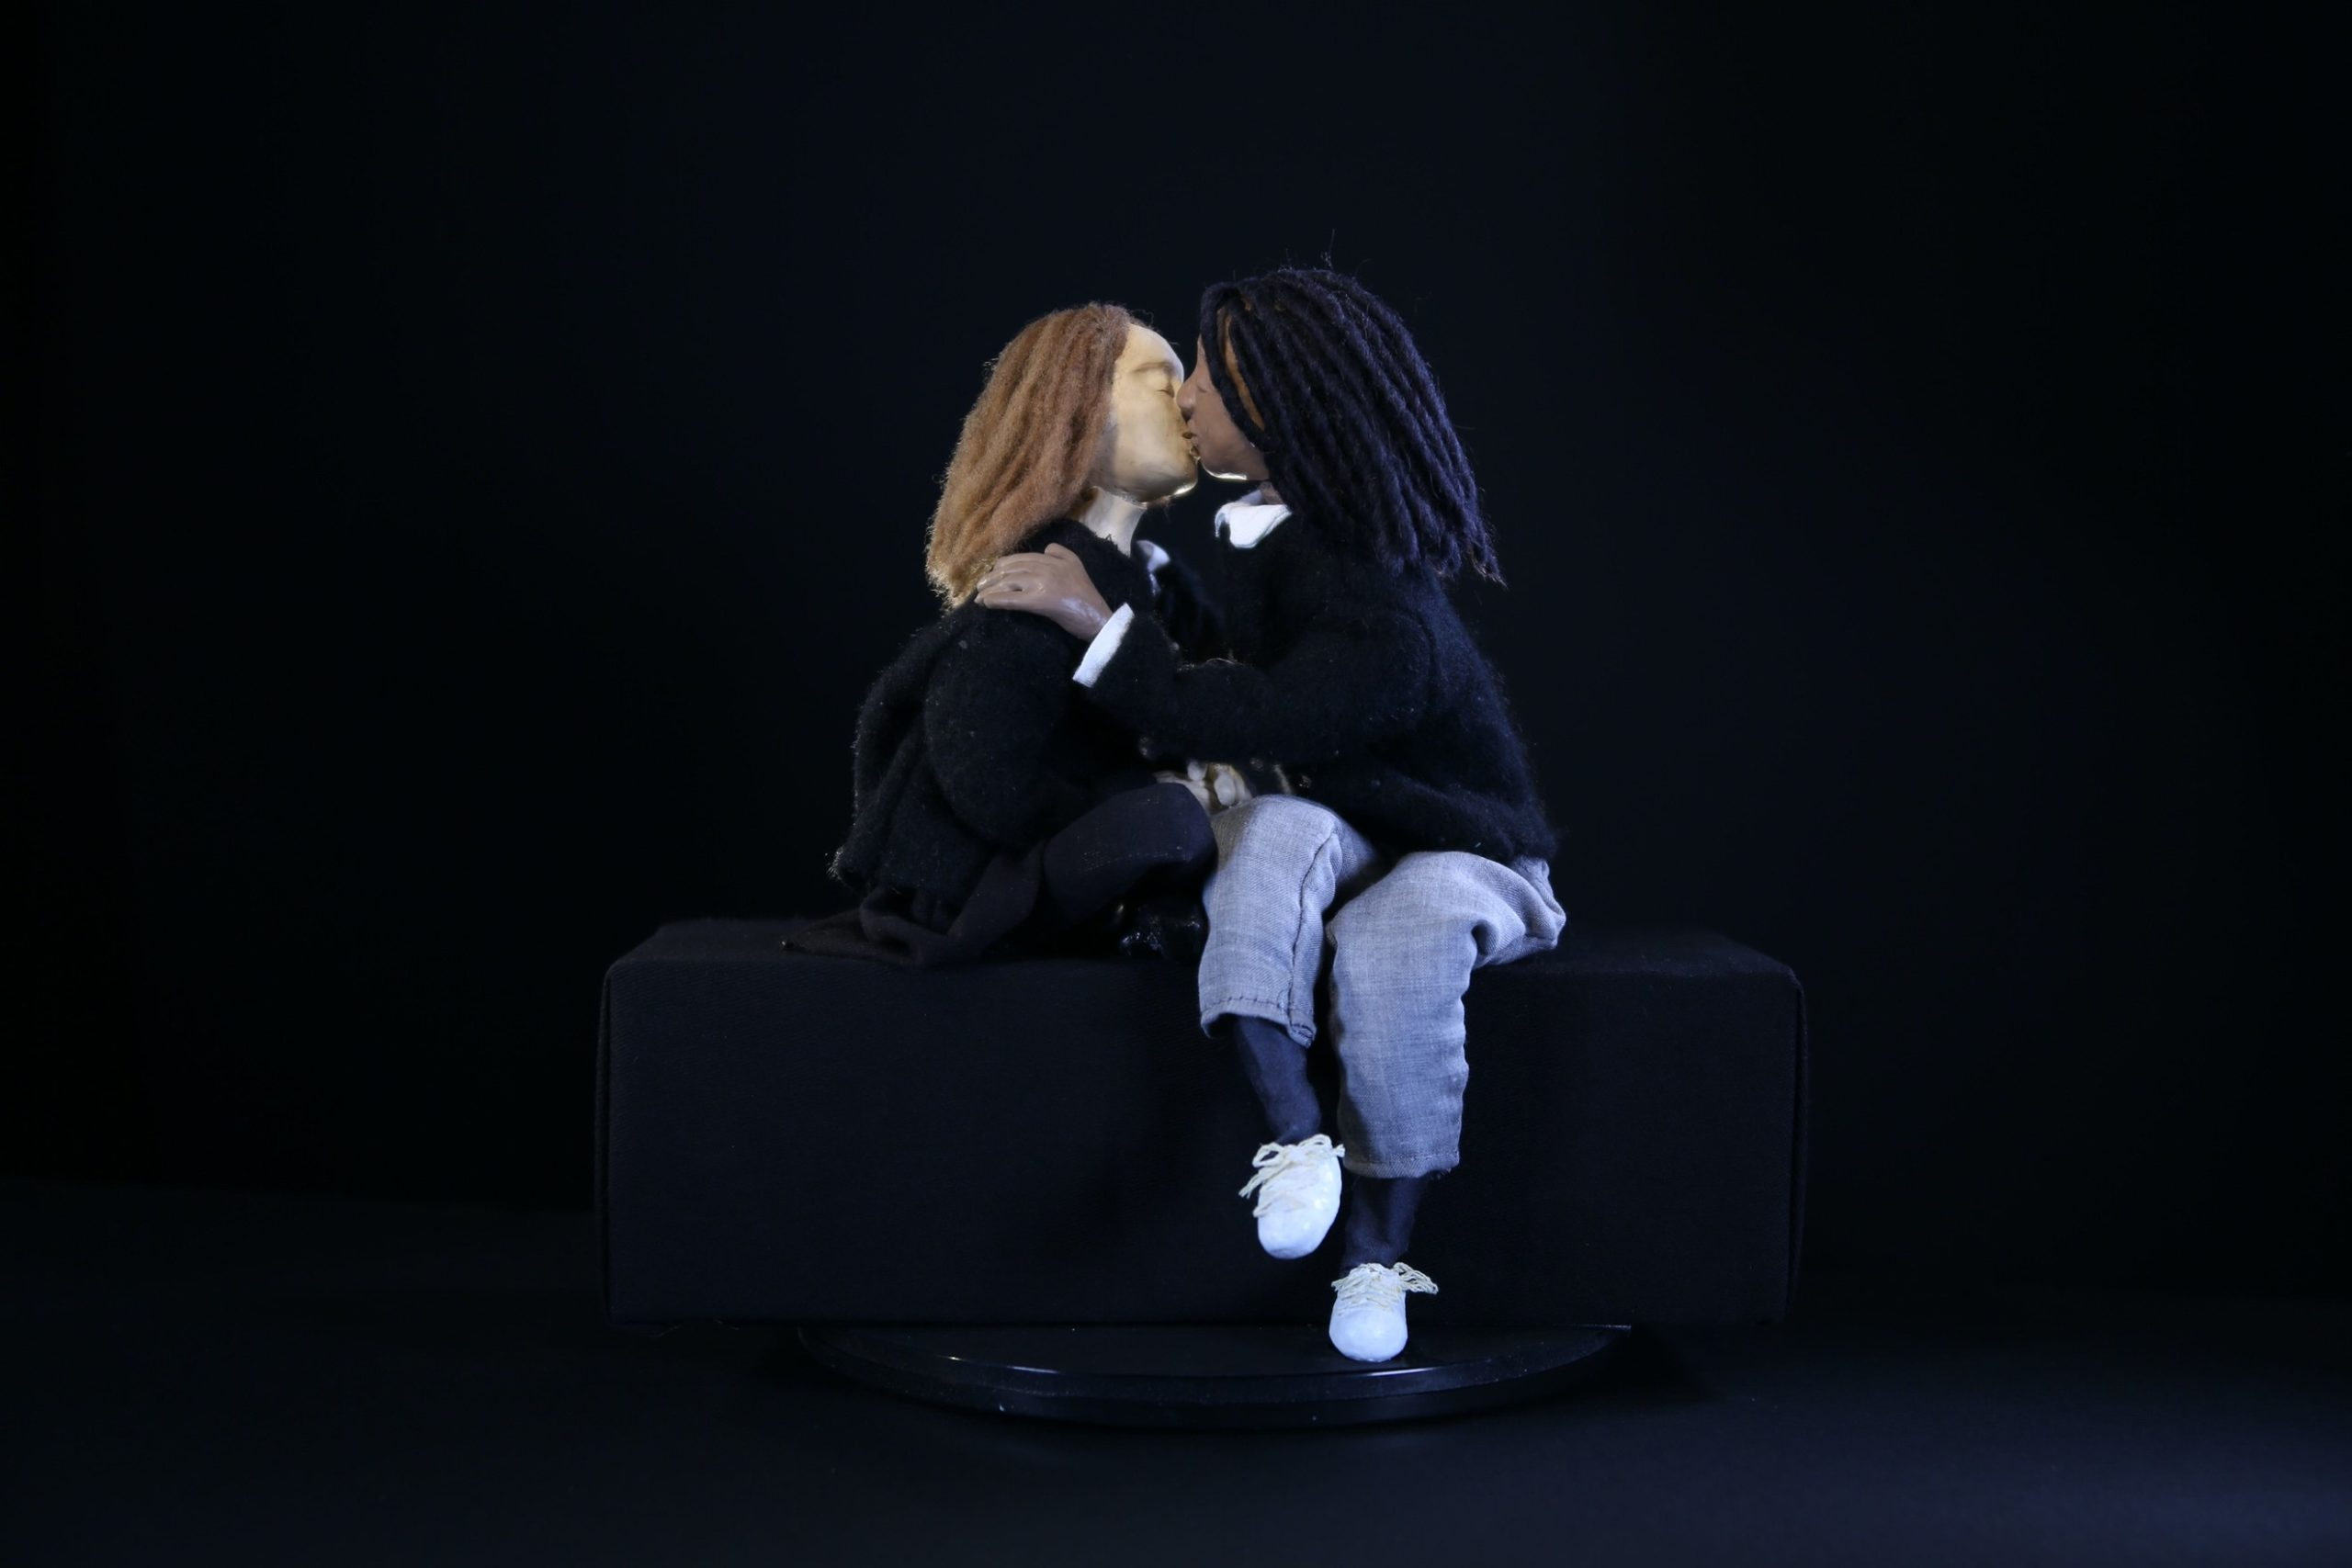 A shot of two puppets that represent the actors kissing in the film Tahara